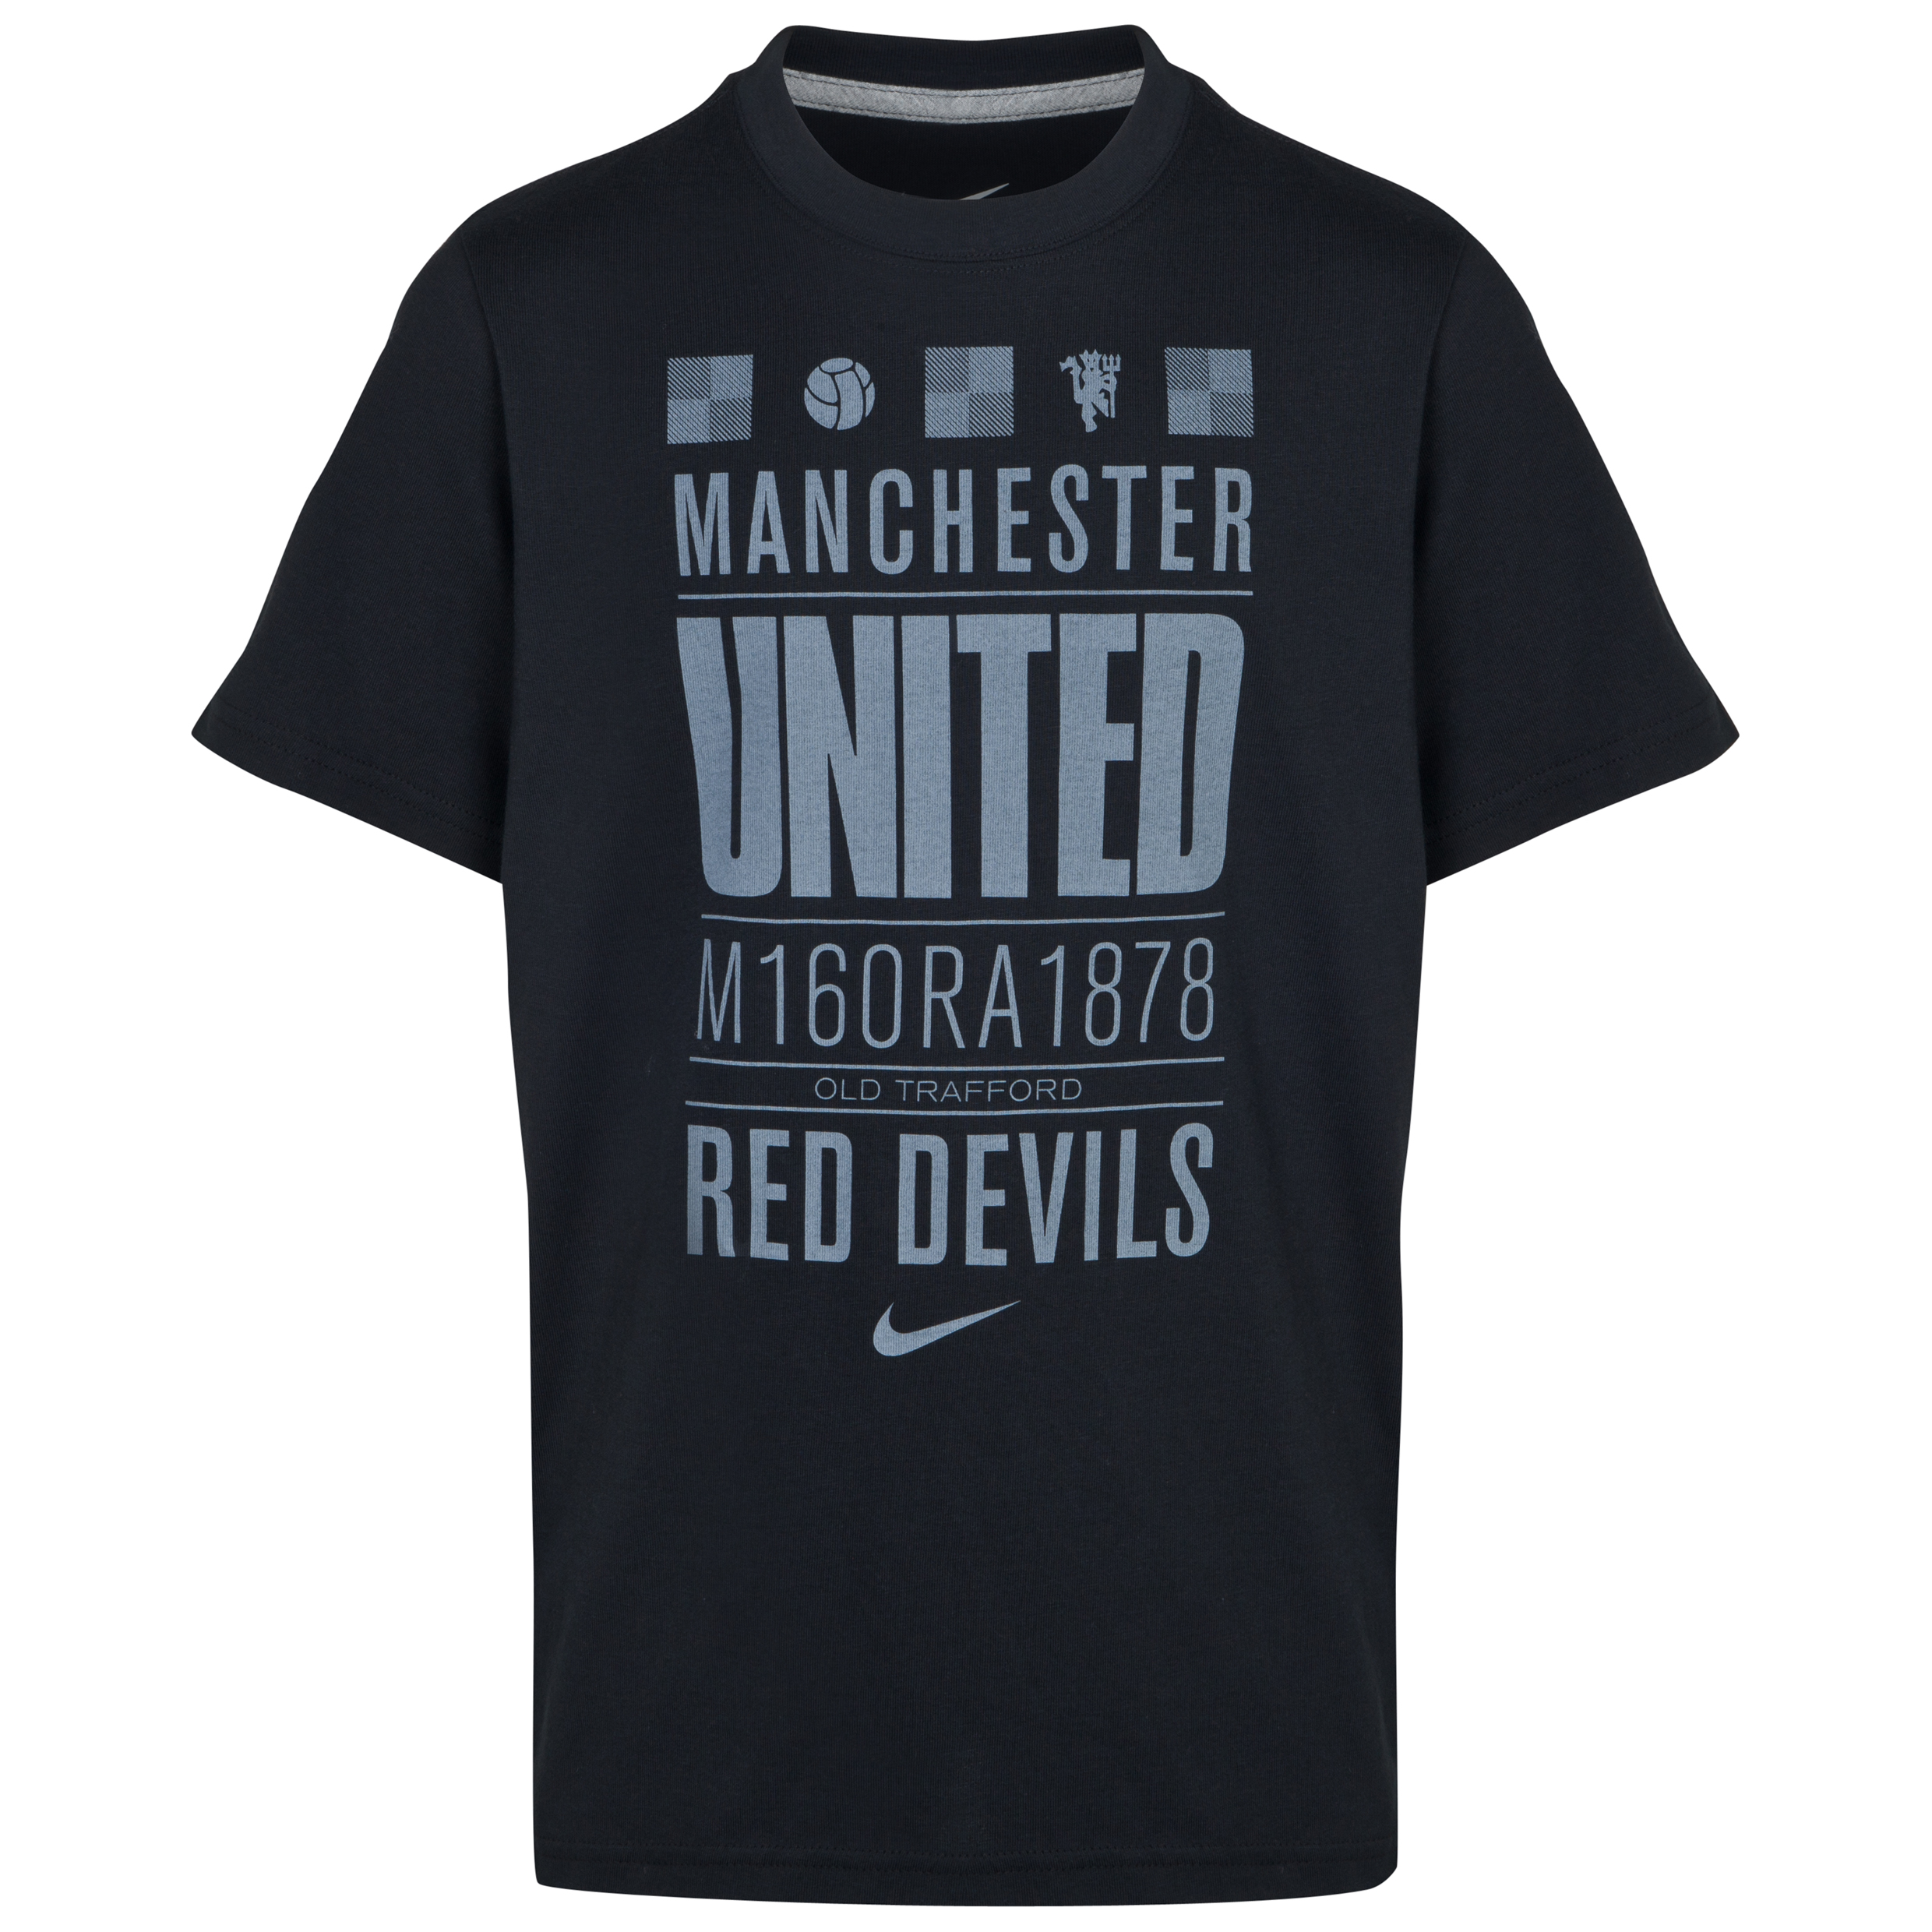 Manchester United Core Plus T-Shirt - Black/Dark Grey Heather Black